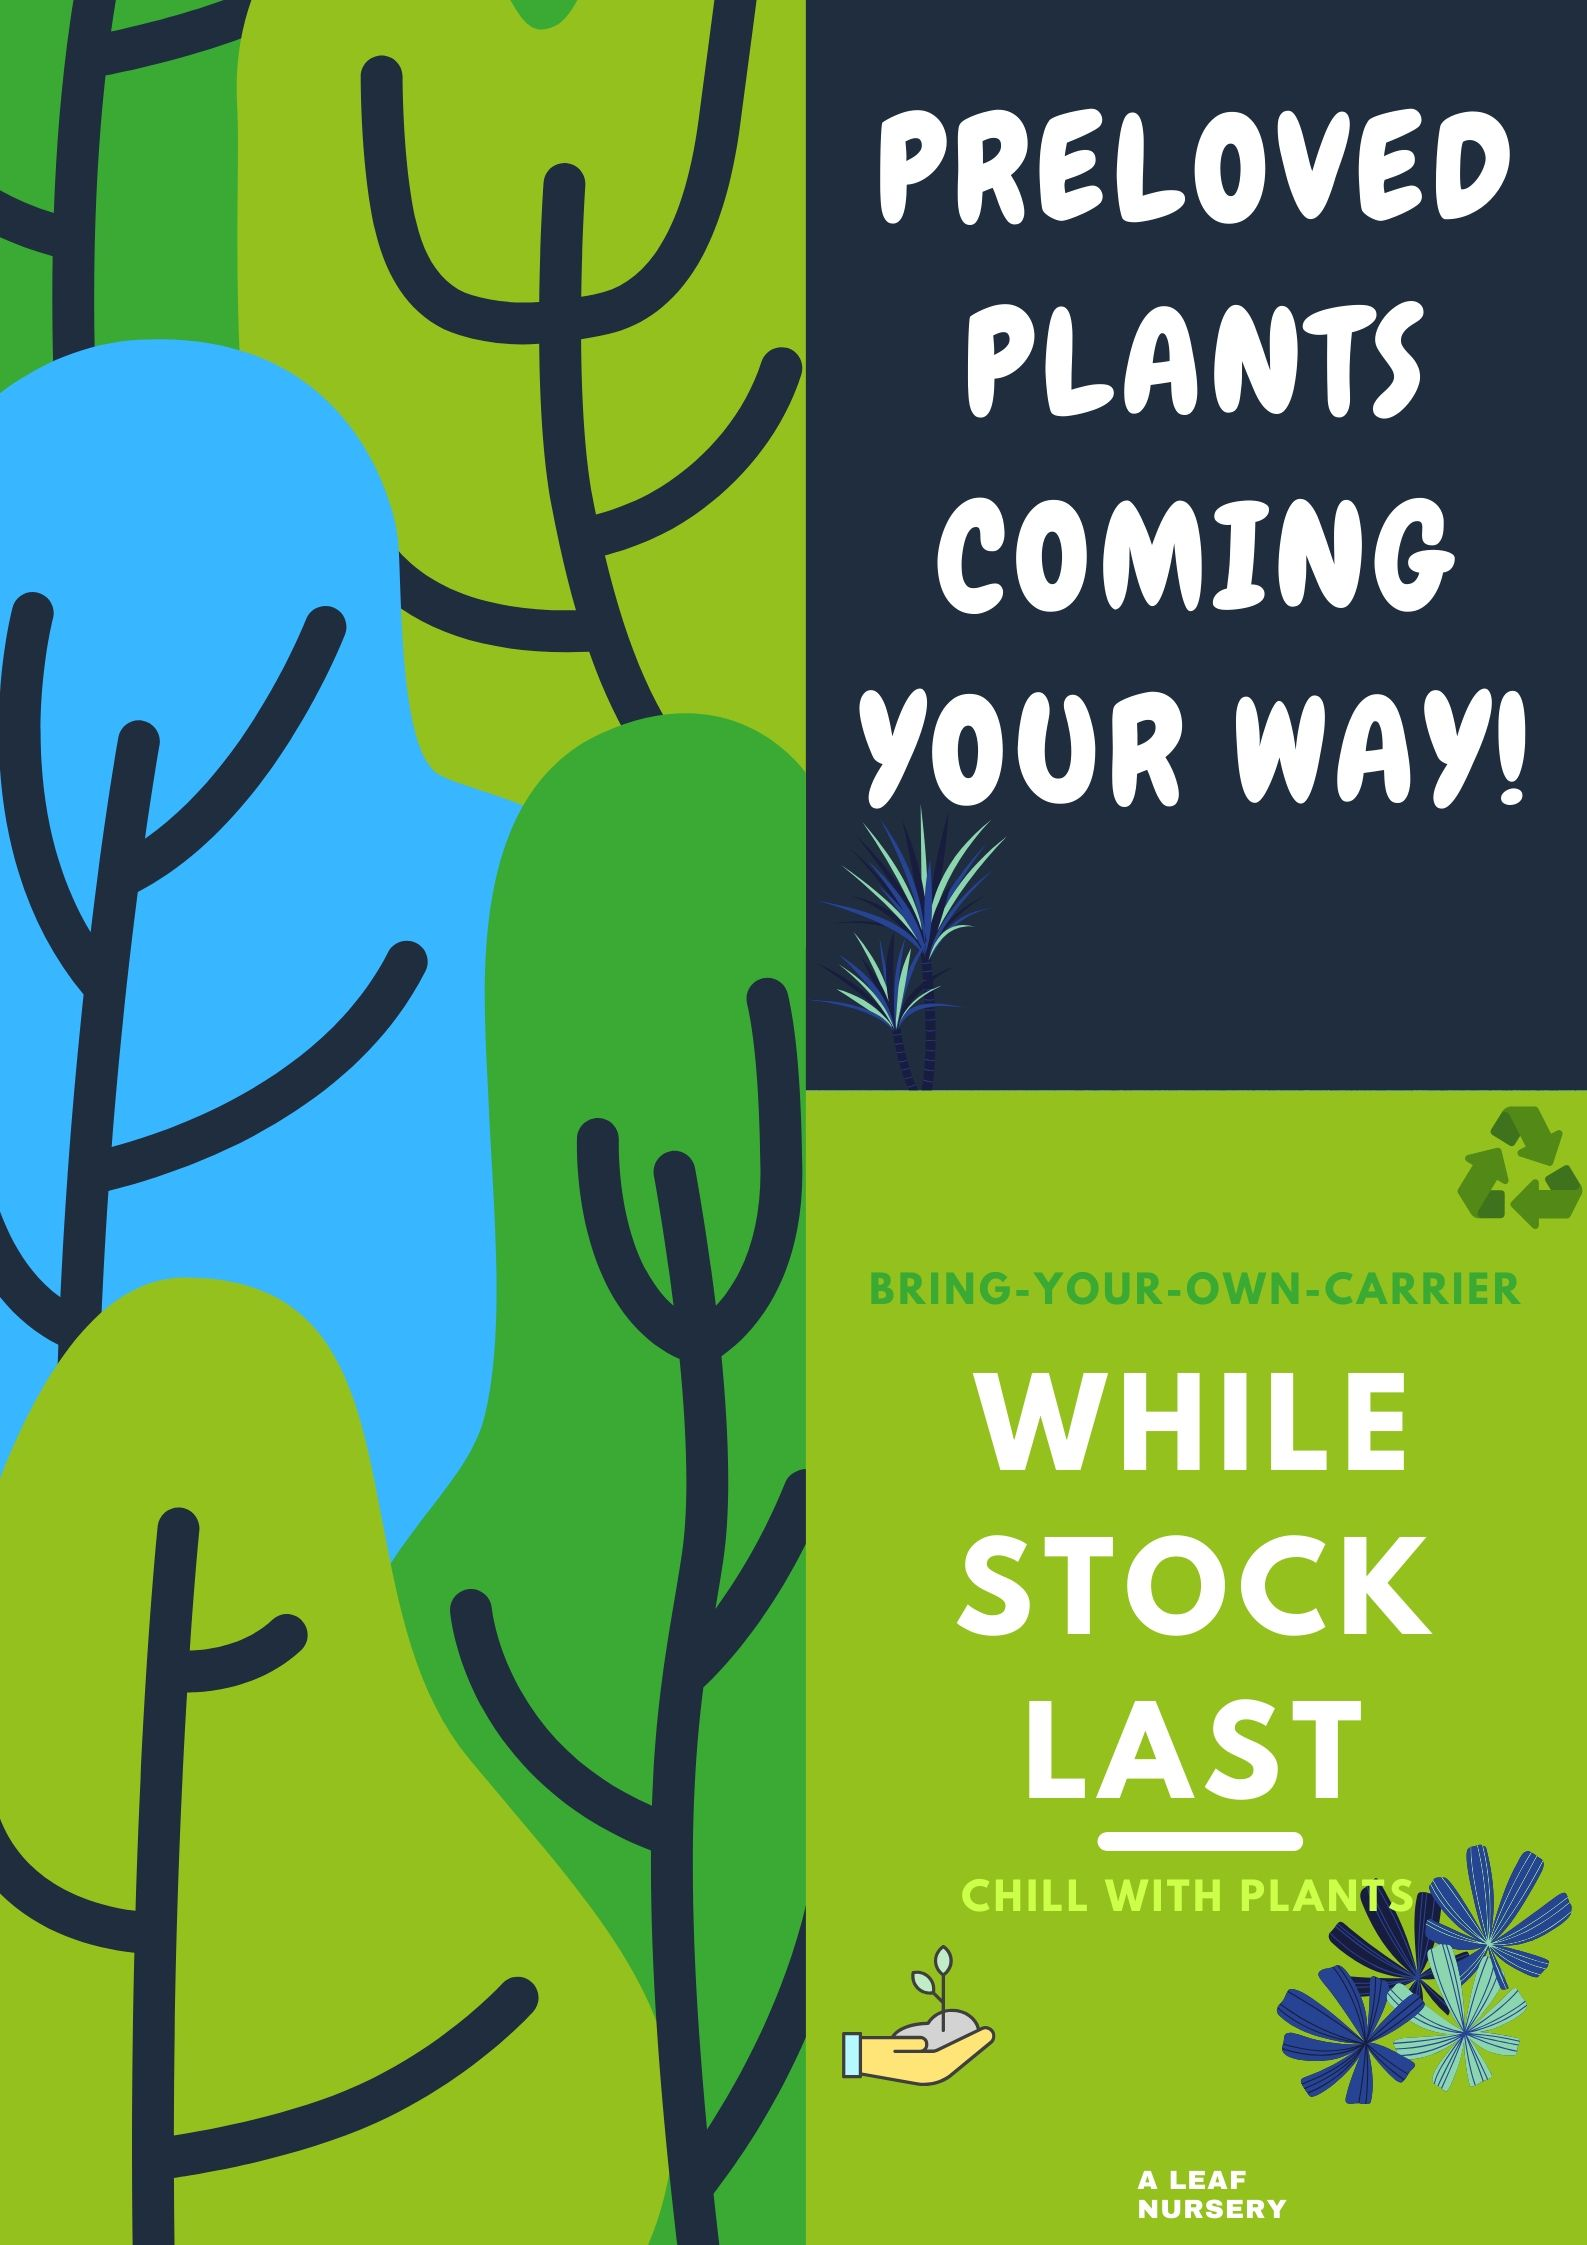 preloved-plants-coming-your-way-.jpg